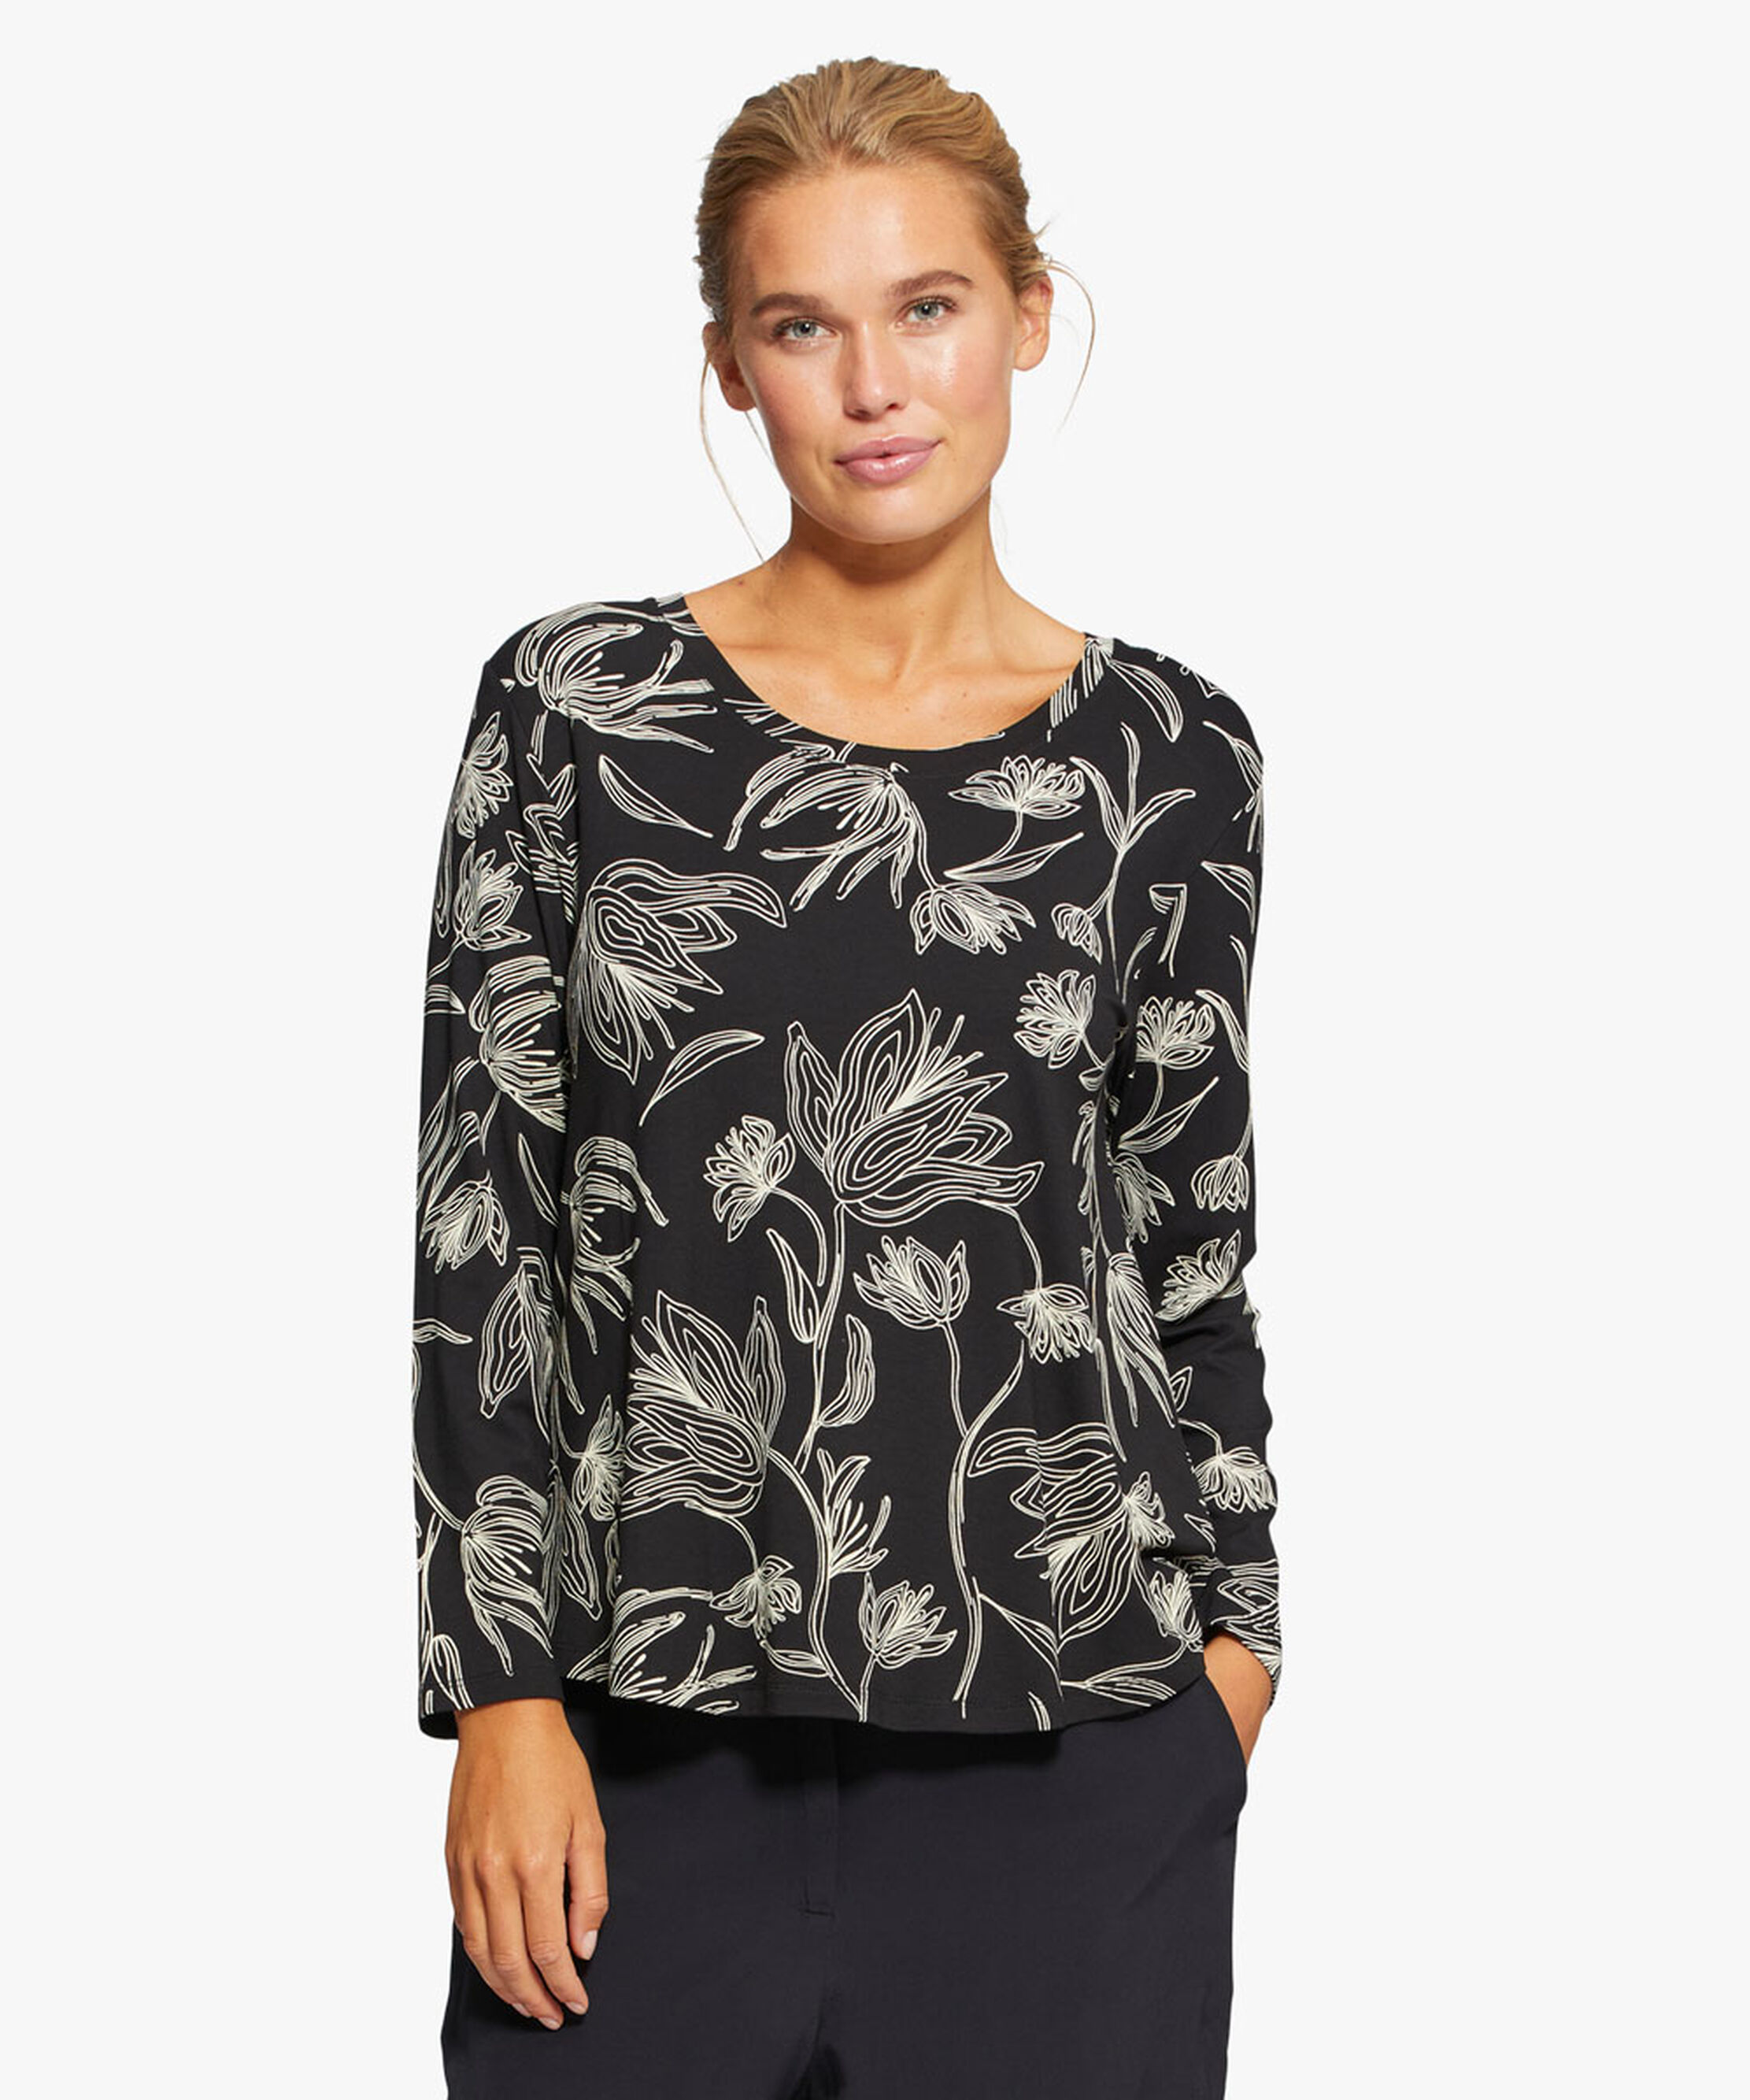 BADISNA TOP, Black, hi-res